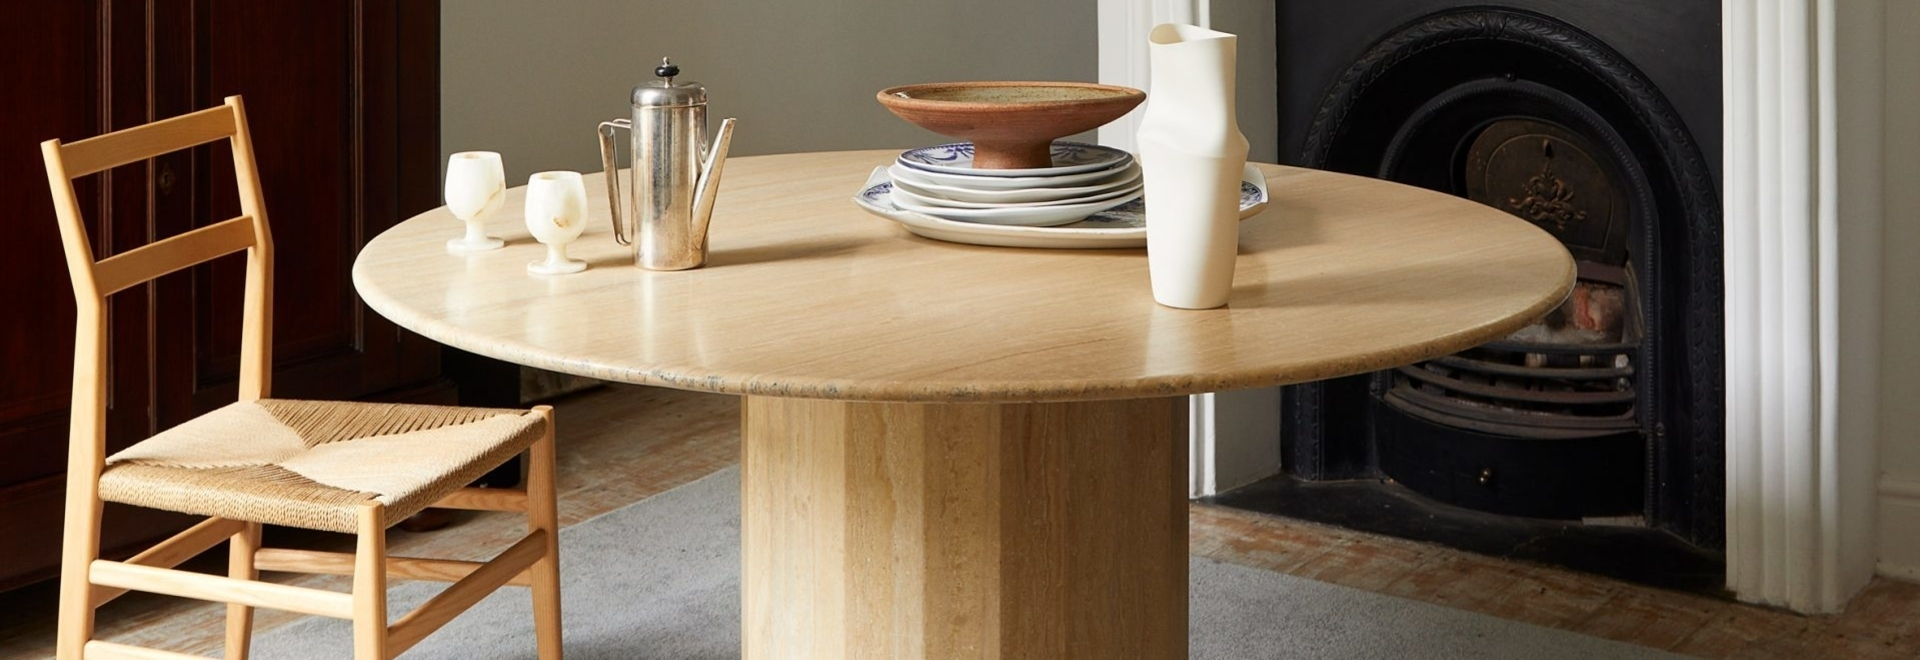 The Ashby table by Lemon